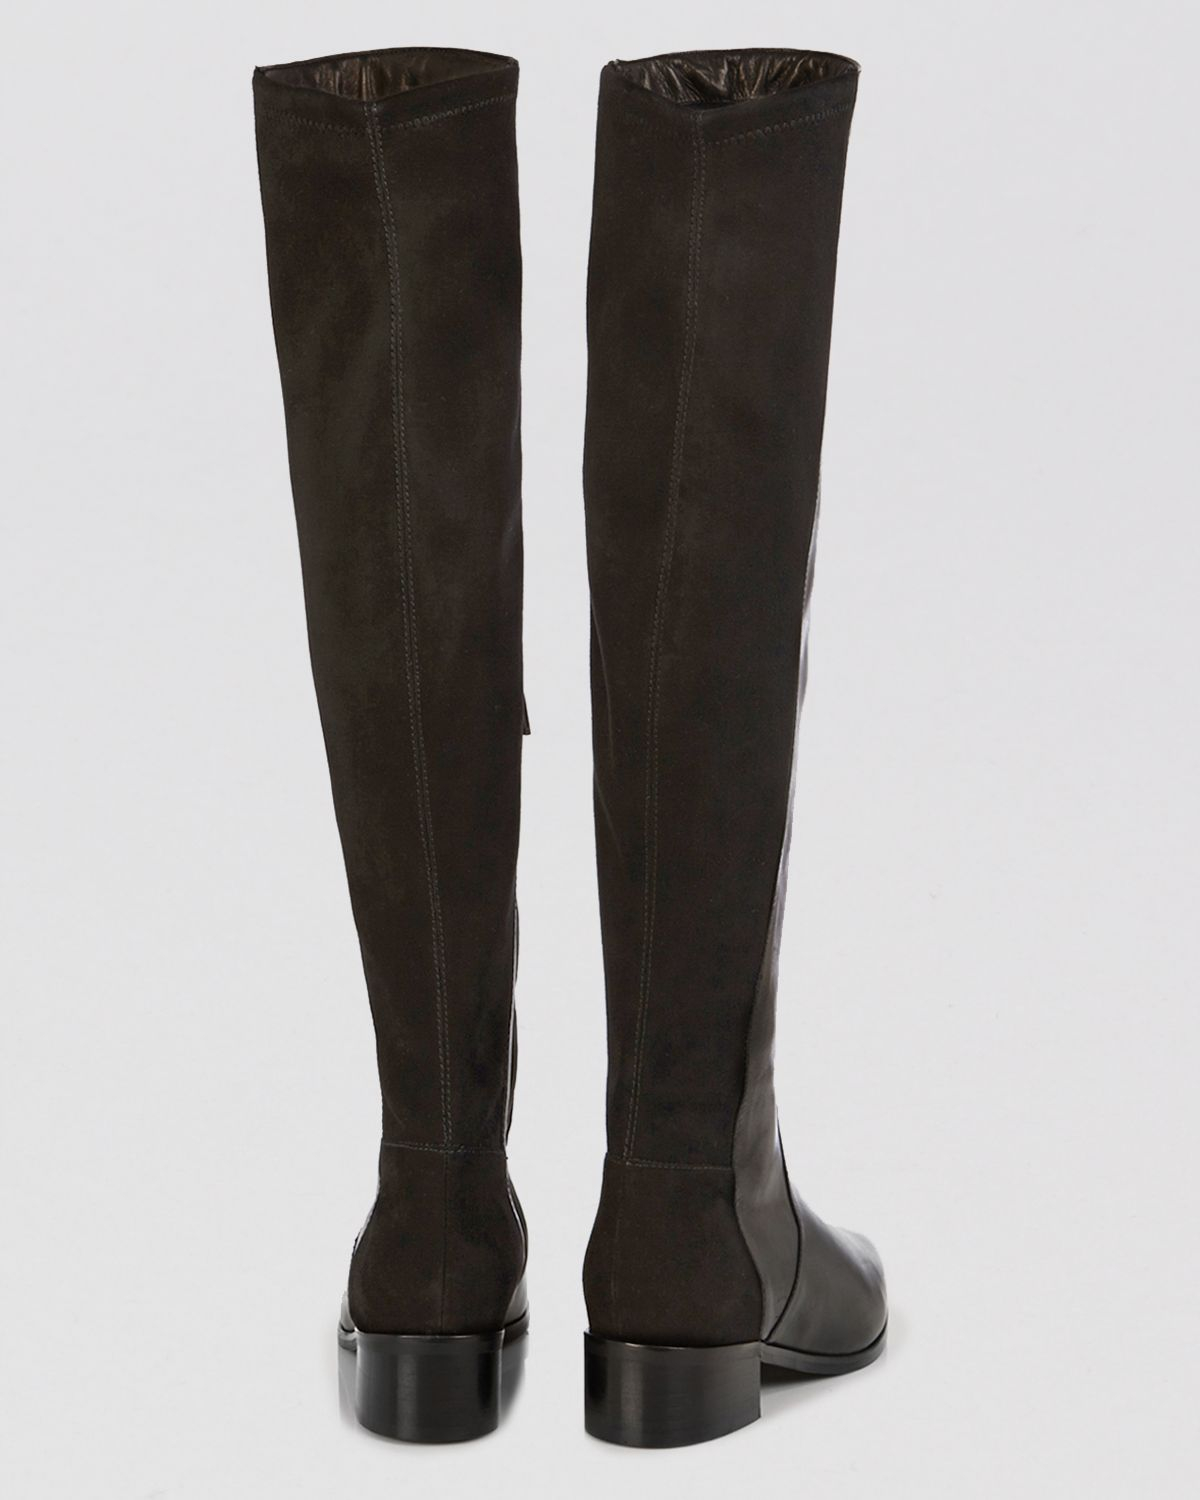 f5e7d938d75 Lyst - Karen Millen Flat Over The Knee Boots - Leather Suede in Black